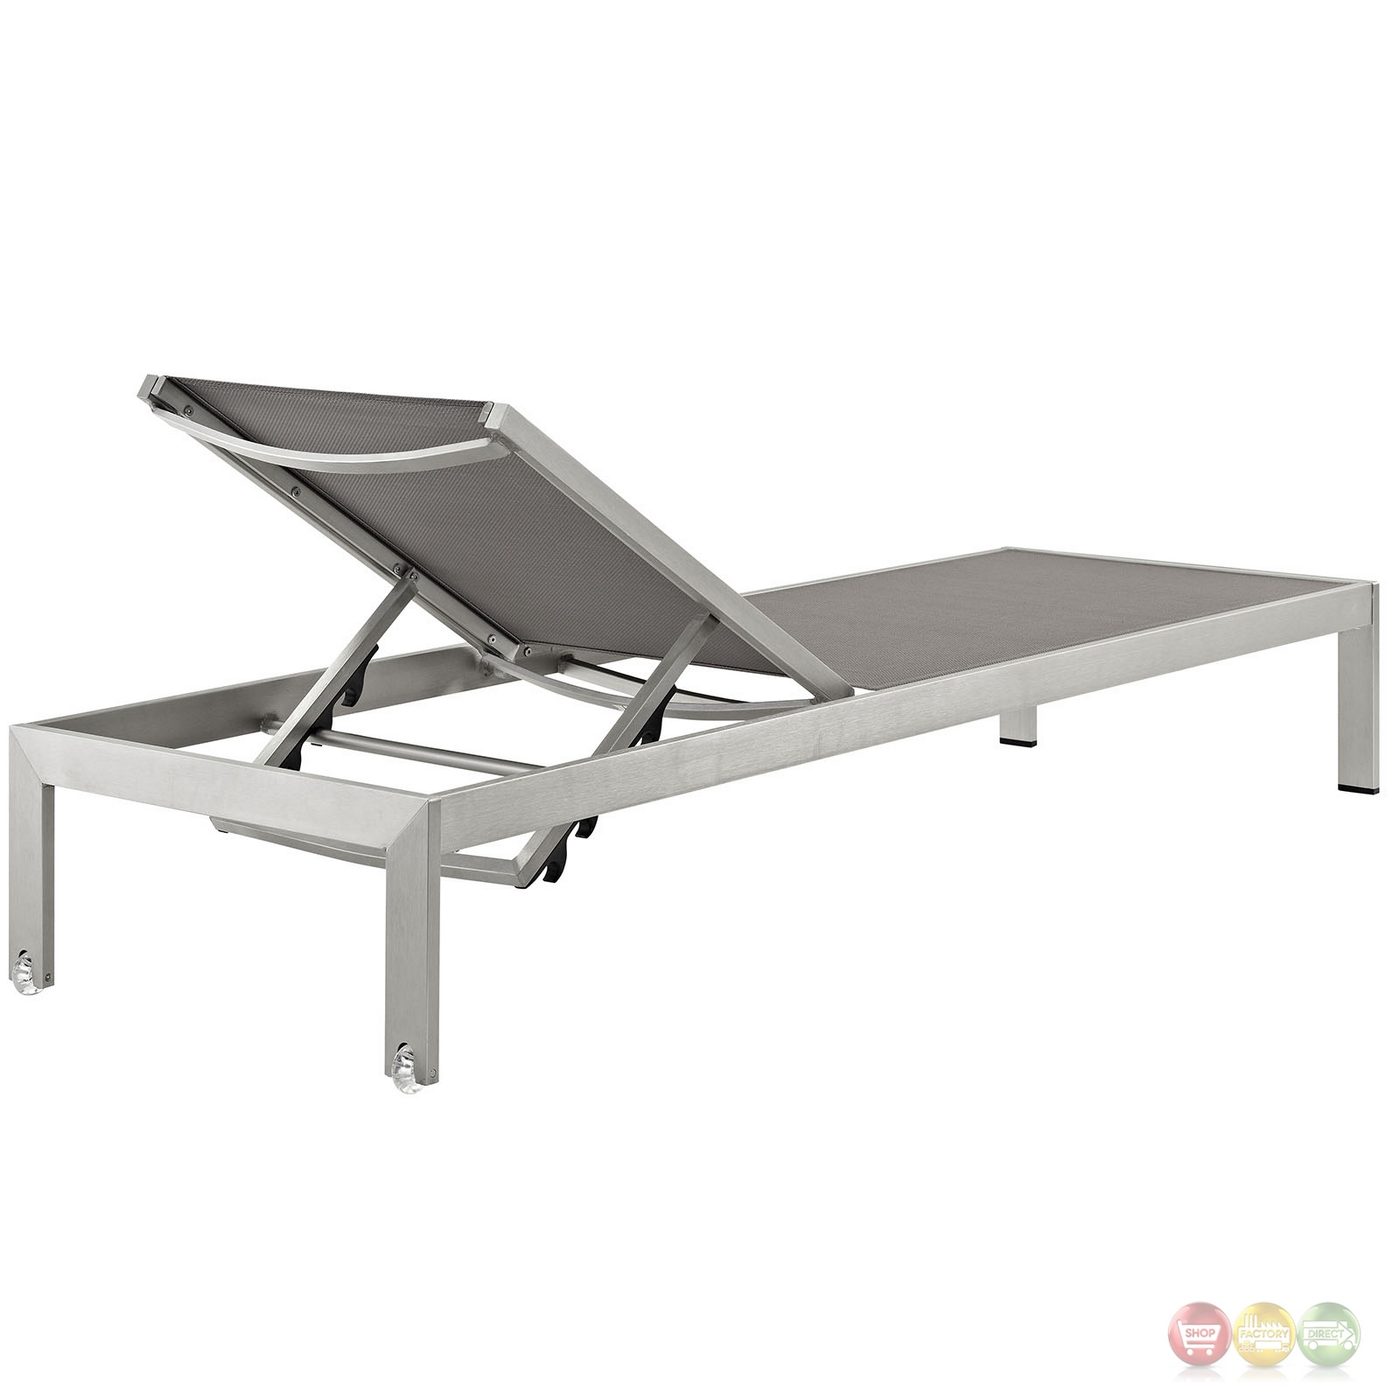 Shore outdoor patio aluminum chaise with breathable mesh - Chaise aluminium exterieur ...